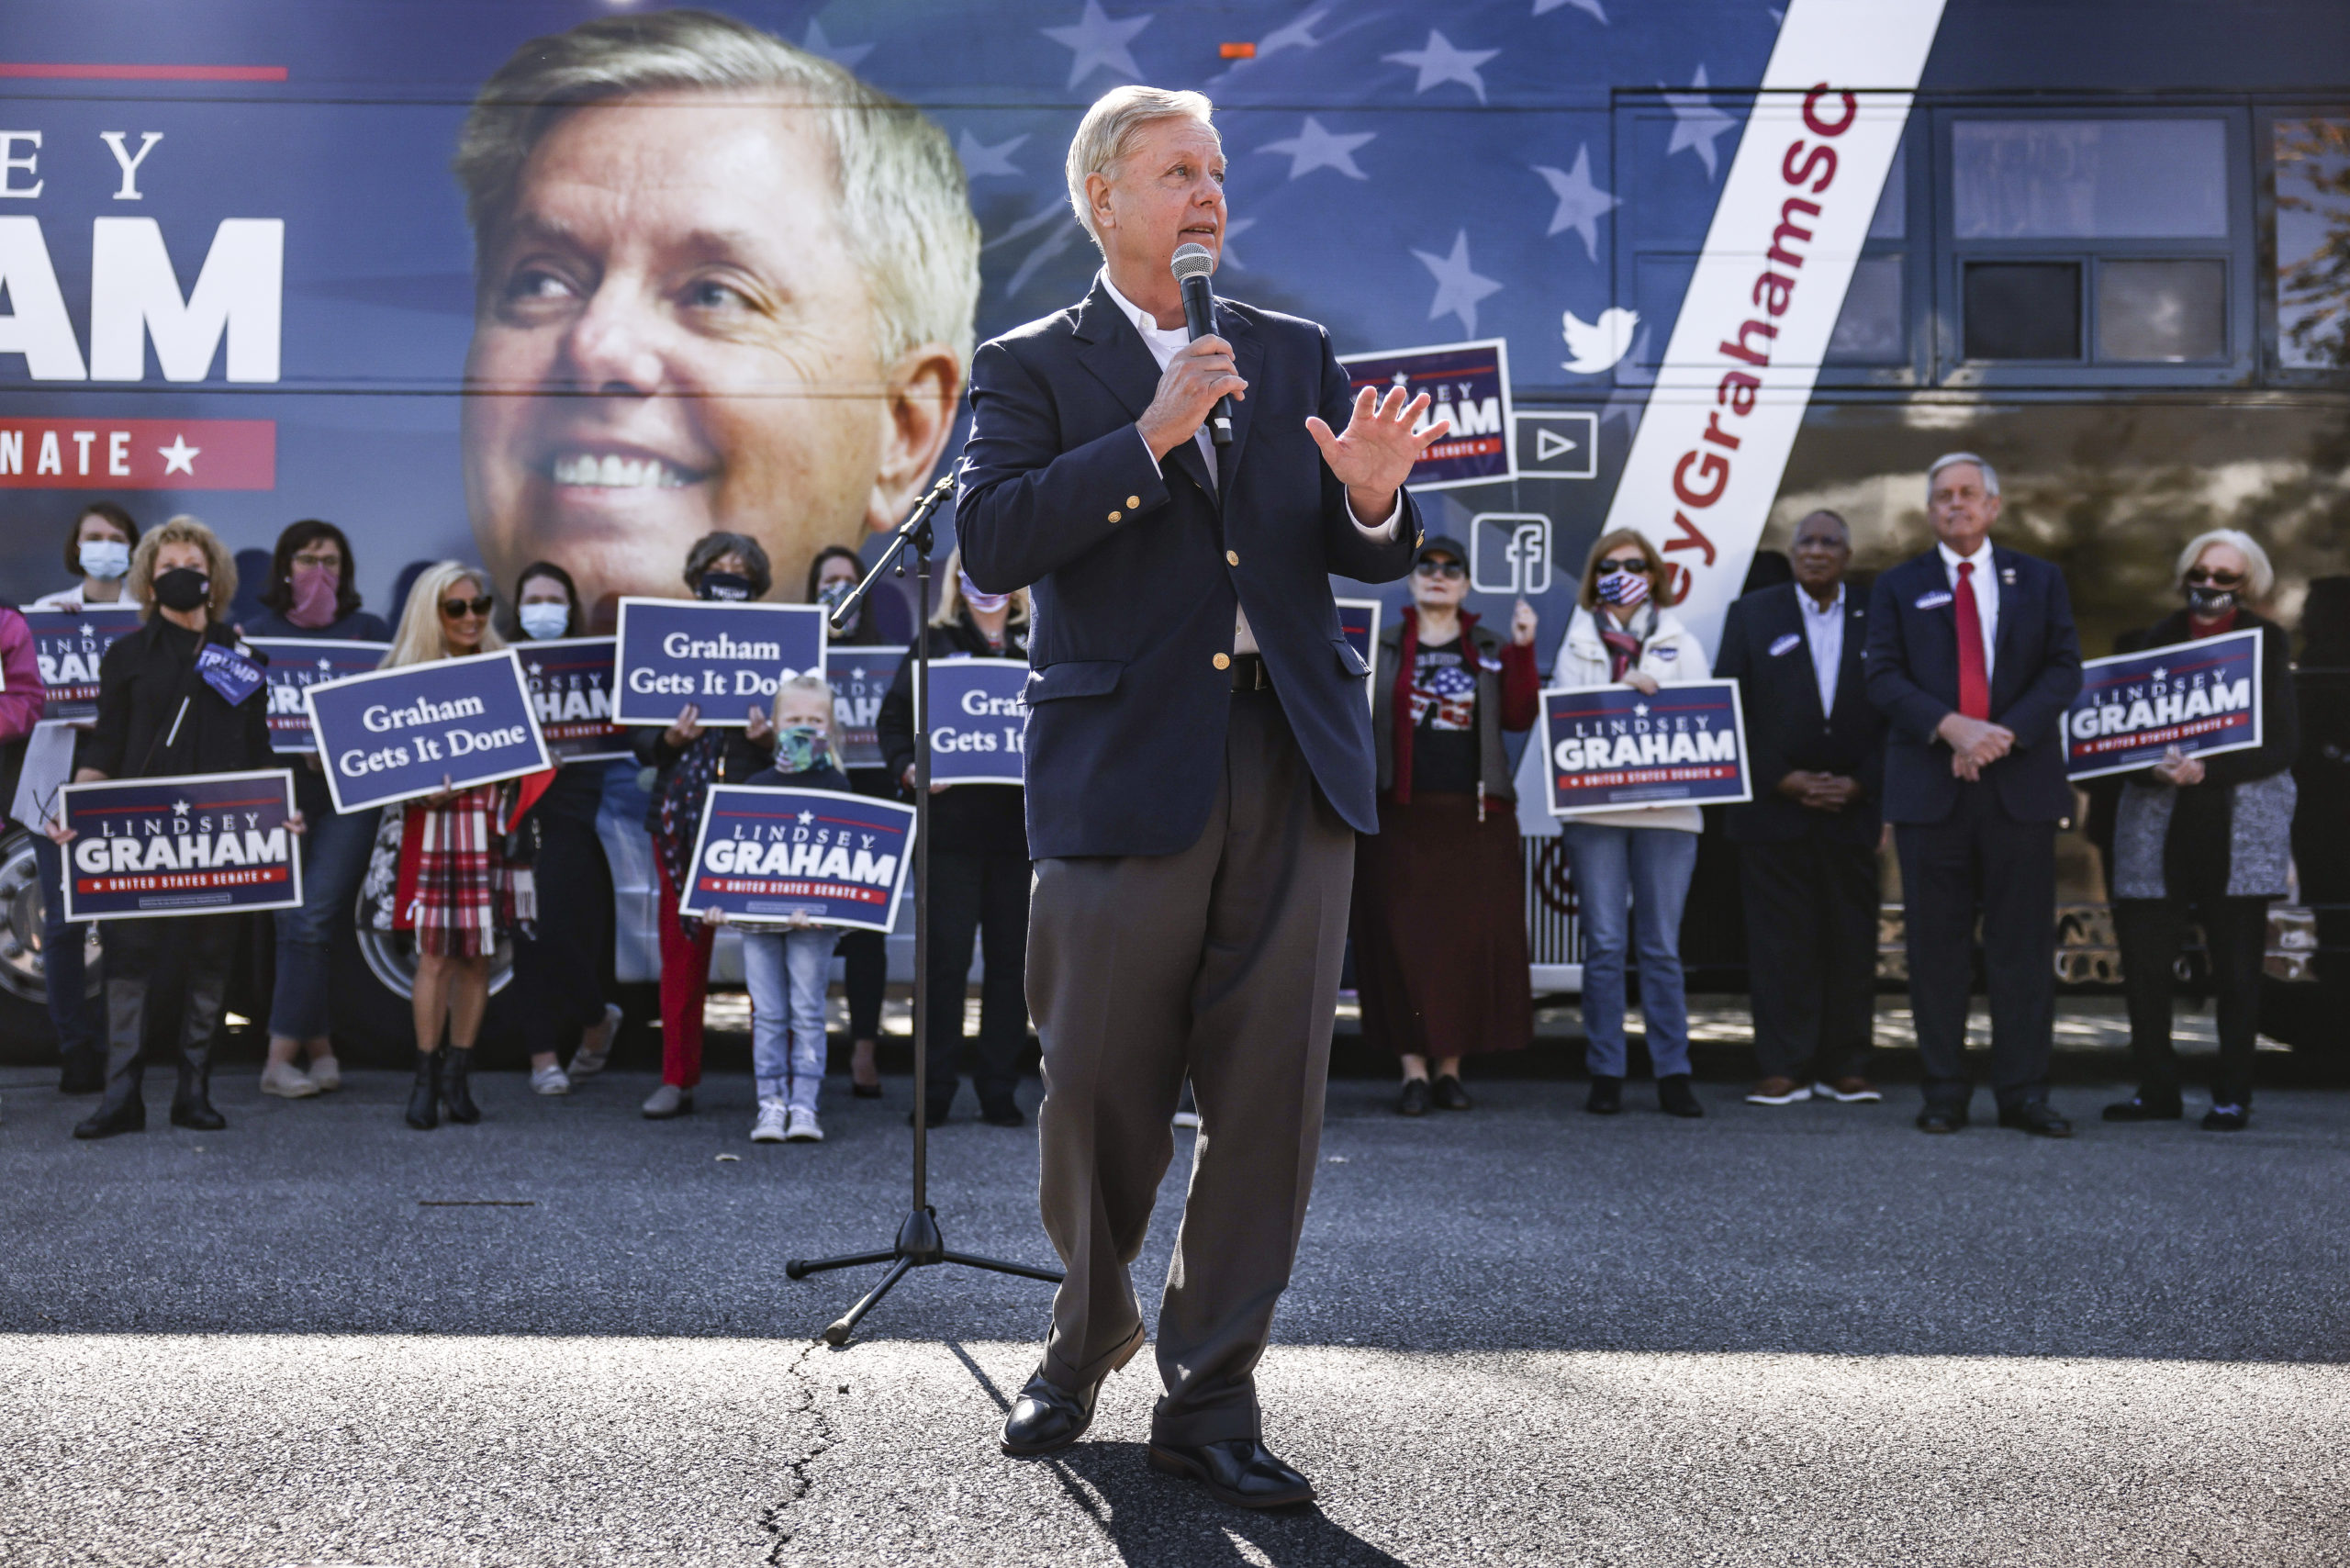 ROCK HILL, SC - NOVEMBER 02: Incumbent candidate Sen. Lindsey Graham (R-SC) speaks to supporters during a campaign bus tour on November 2, 2020 in Rock Hill, South Carolina. Graham is in a closely watched race with Democratic U.S. Senate candidate Jaime Harrison. (Photo by Michael Ciaglo/Getty Images)